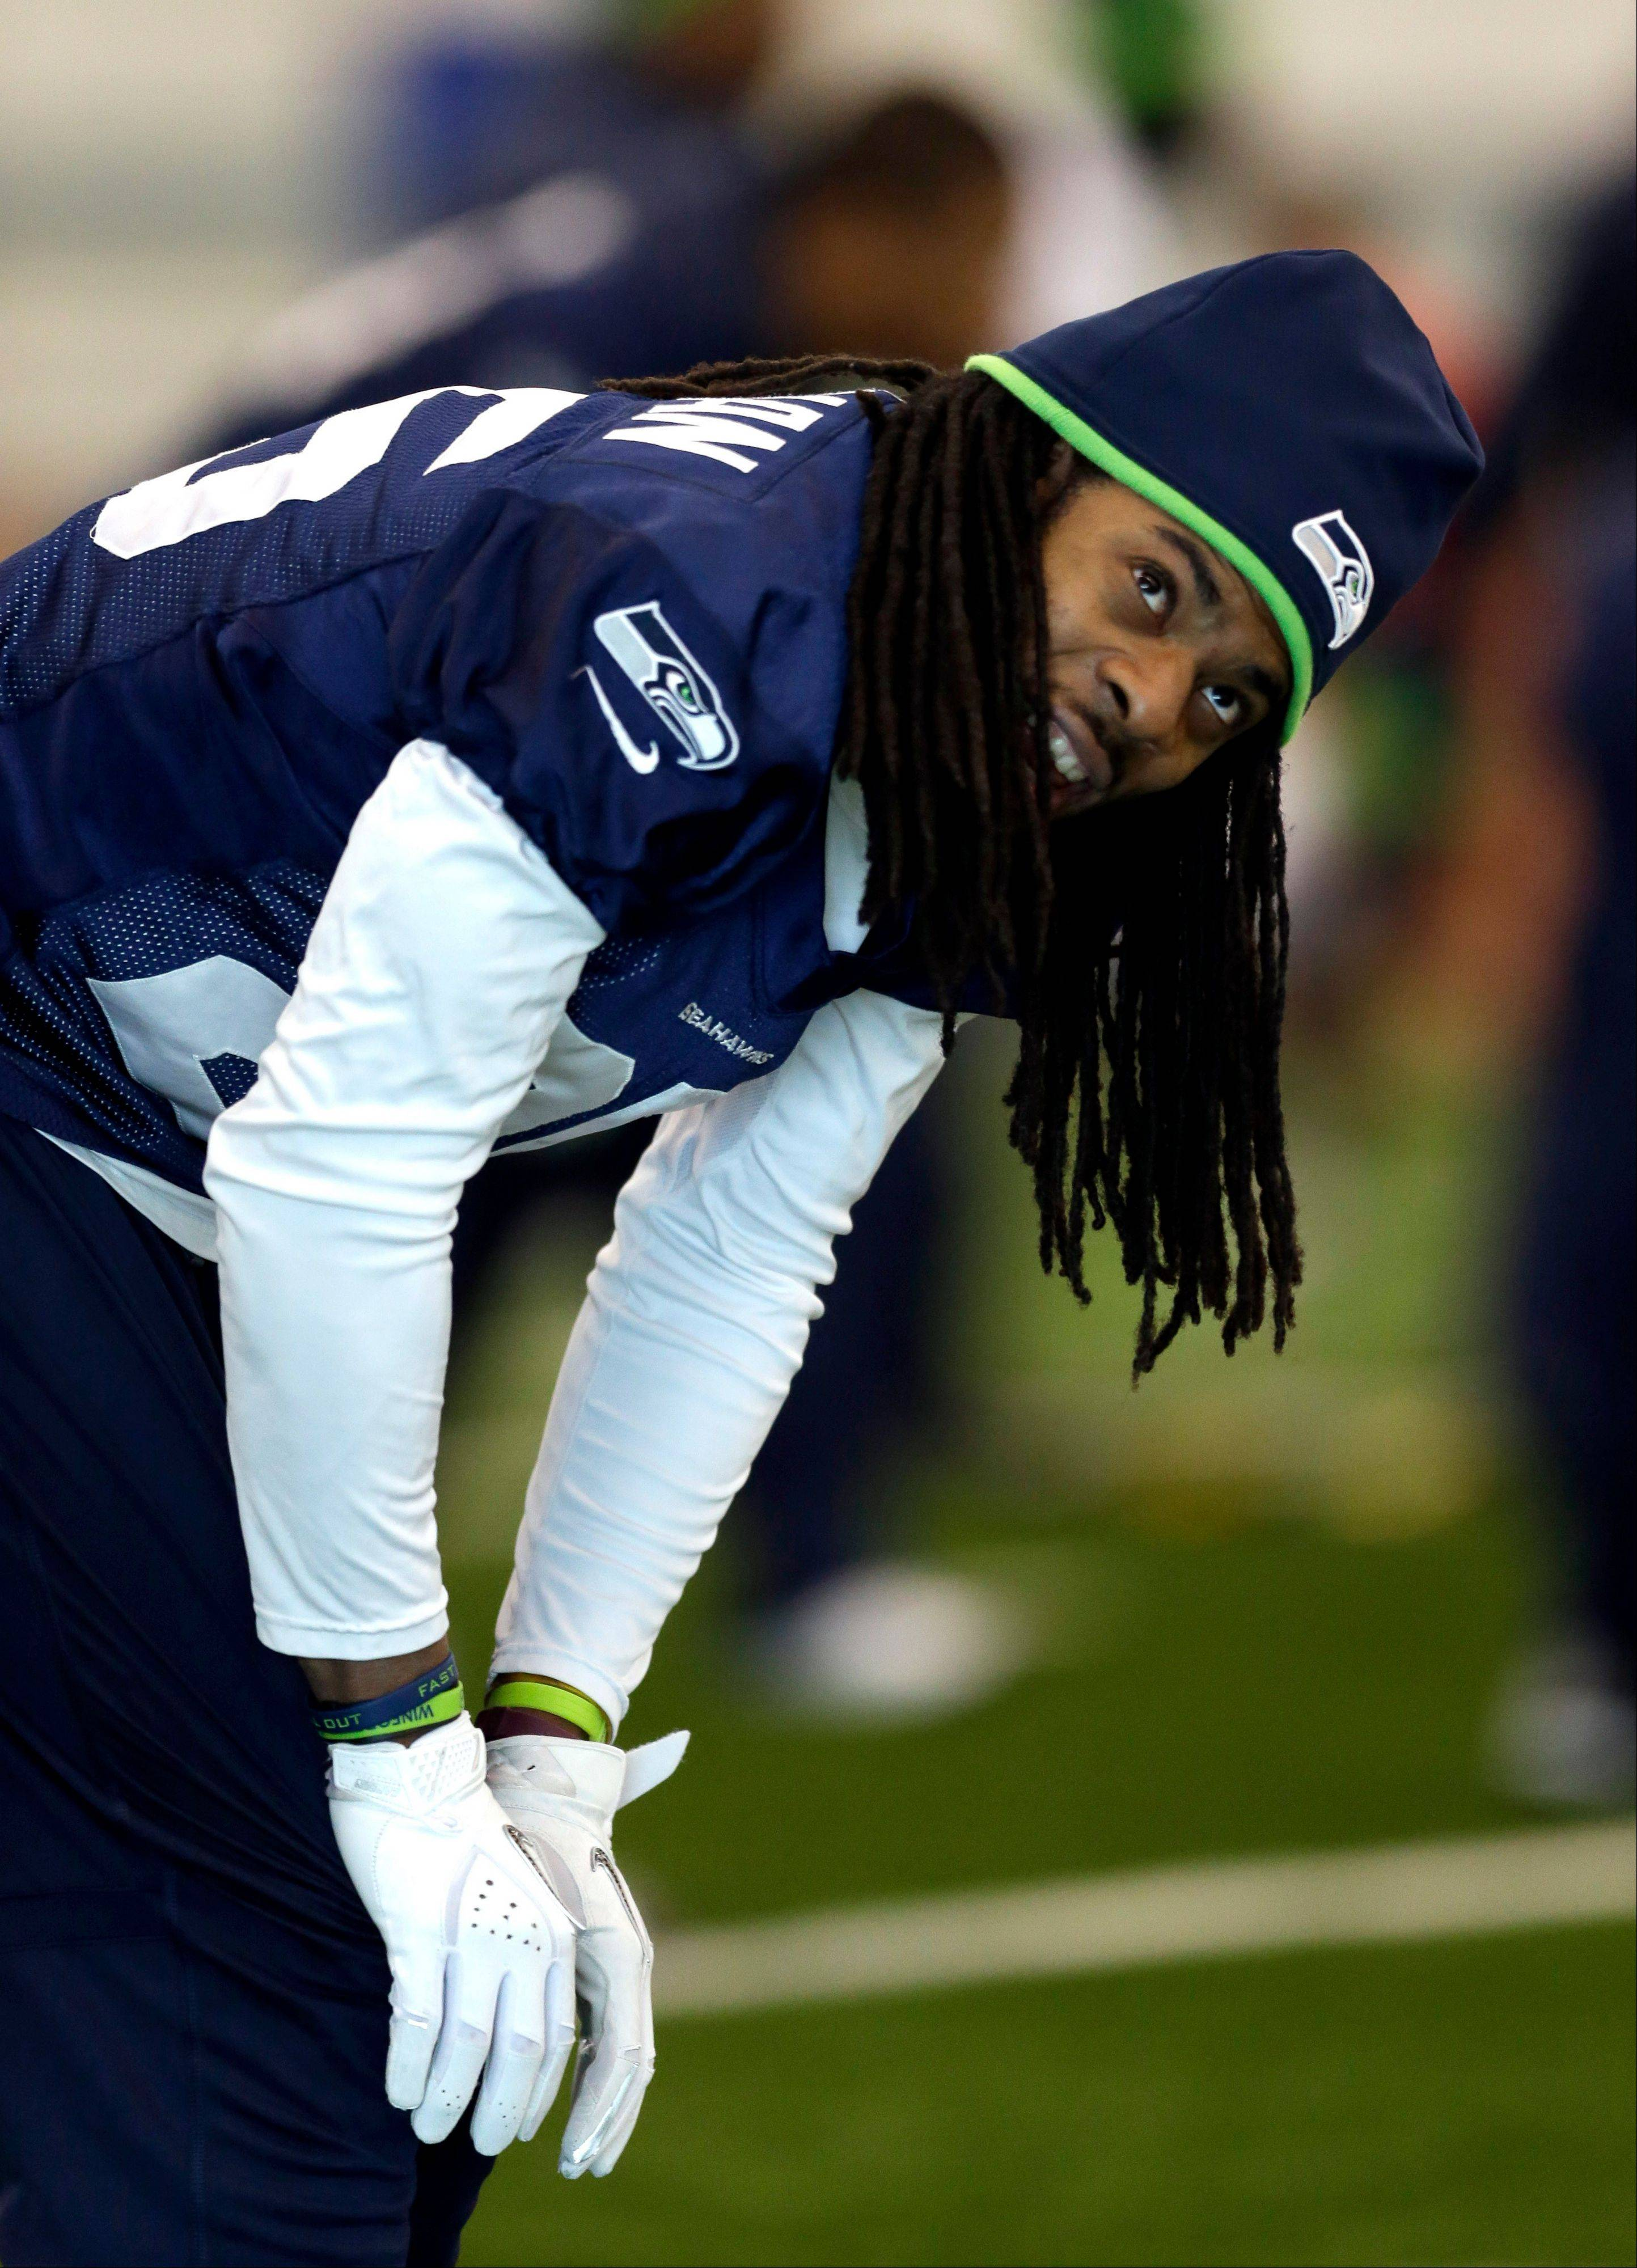 Seattle Seahawks cornerback Richard Sherman warms up during NFL football practice Friday, Jan. 31, 2014, in East Rutherford, N.J. The Seahawks and the Denver Broncos are scheduled to play in the Super Bowl XLVIII football game Sunday, Feb. 2, 2014.